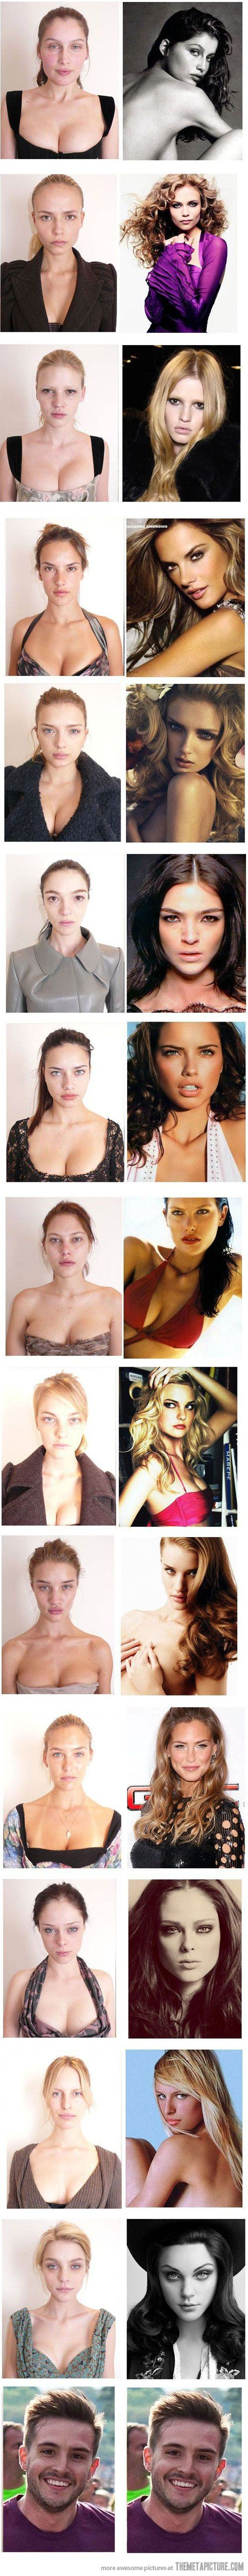 Supermodels without make-up....This should make us feel like supermodels,we just havn't been discovered YET !